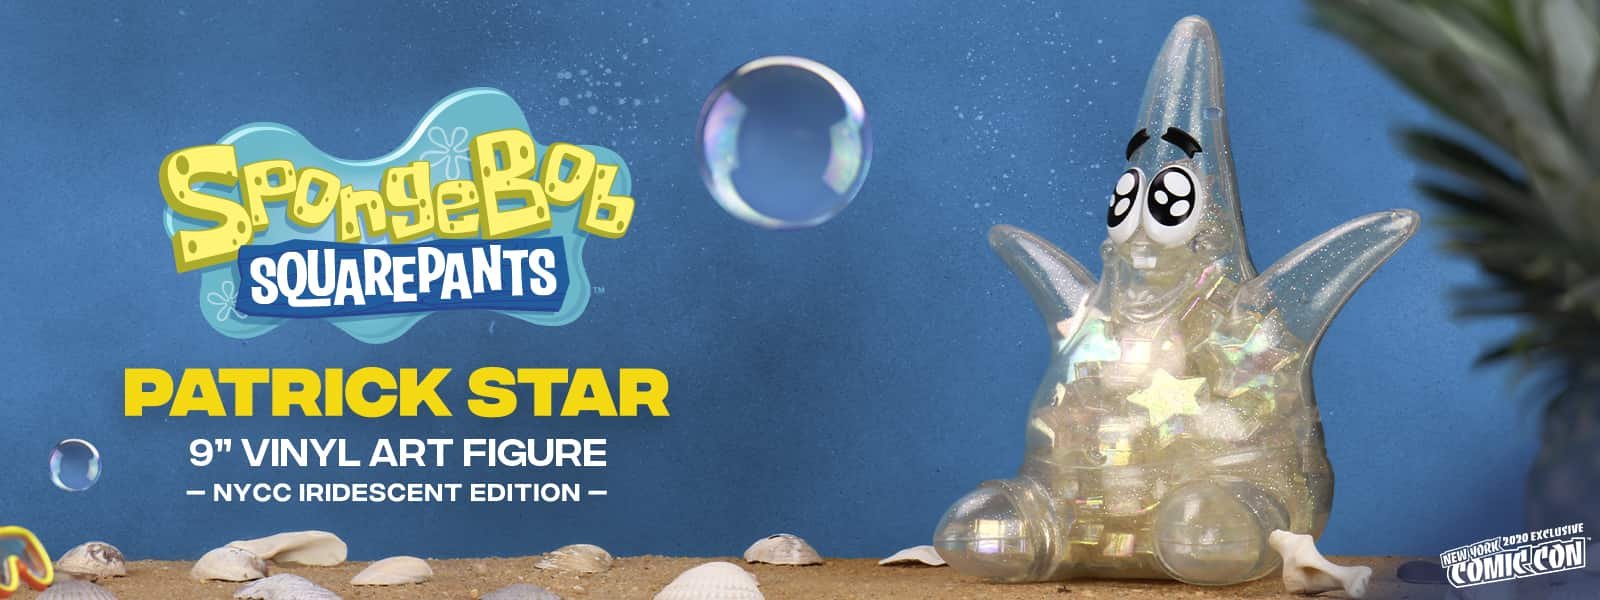 Patrick Star NYCC Exclusive Art Figure Spongebob Squarepants